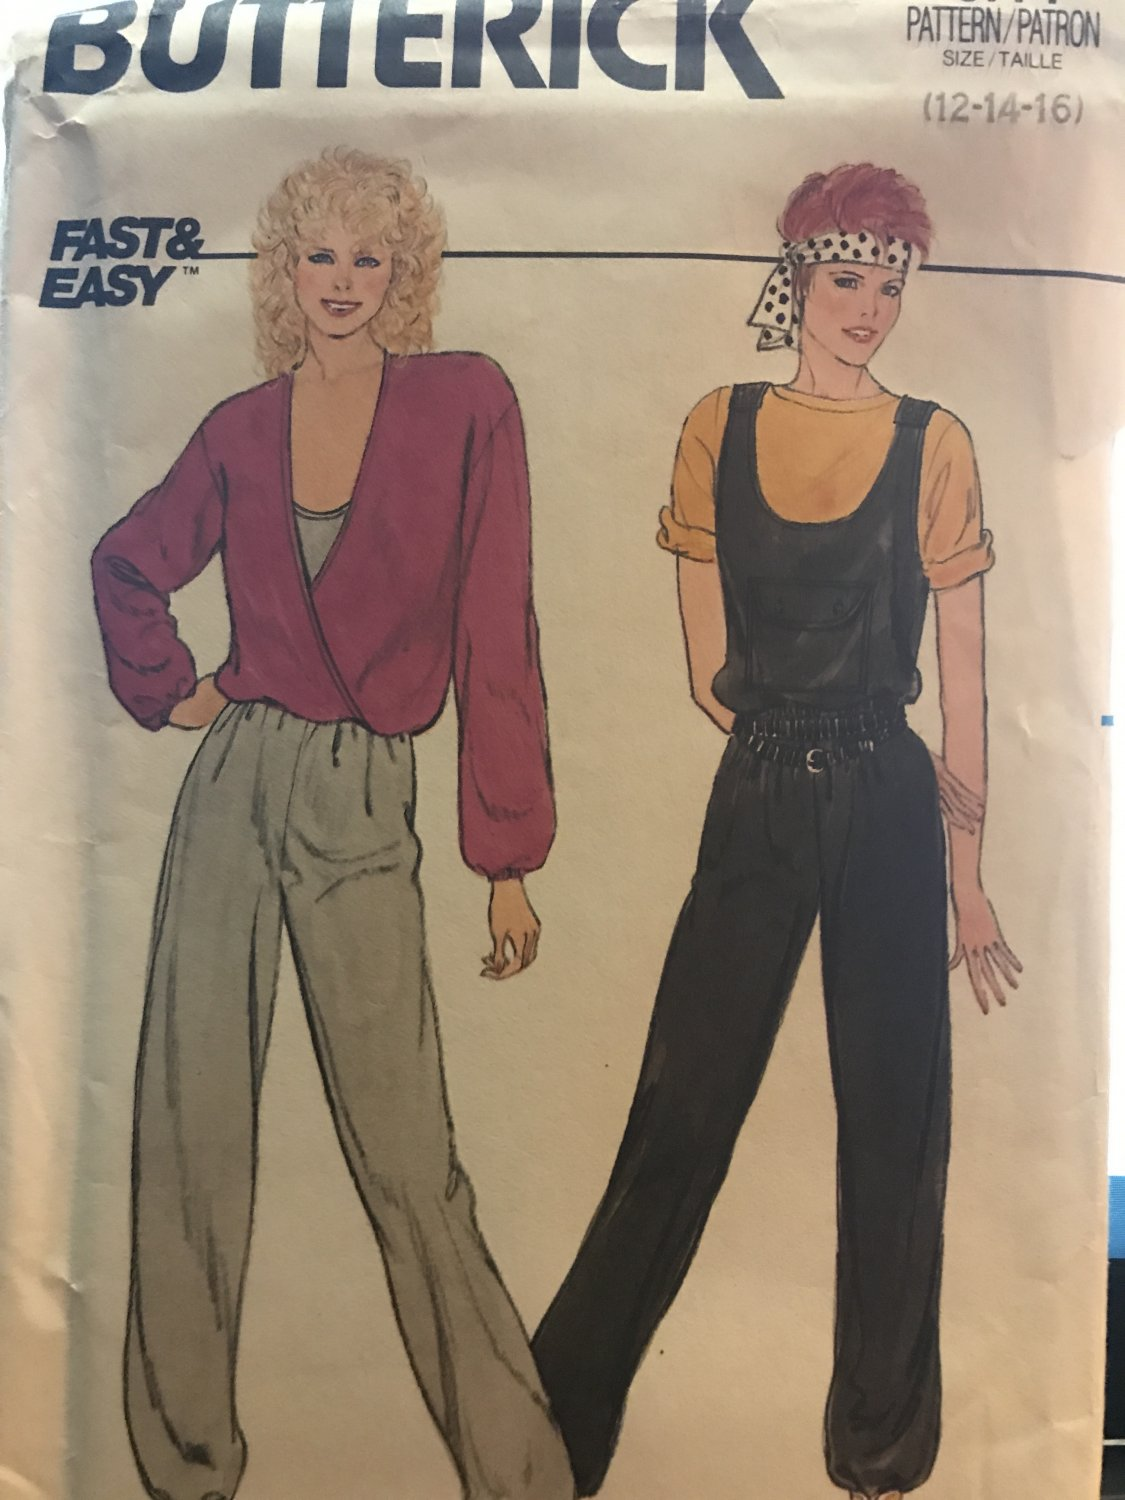 Butterick 6771 Misses' top and jumpsuit Sewing Pattern size 12 14 16